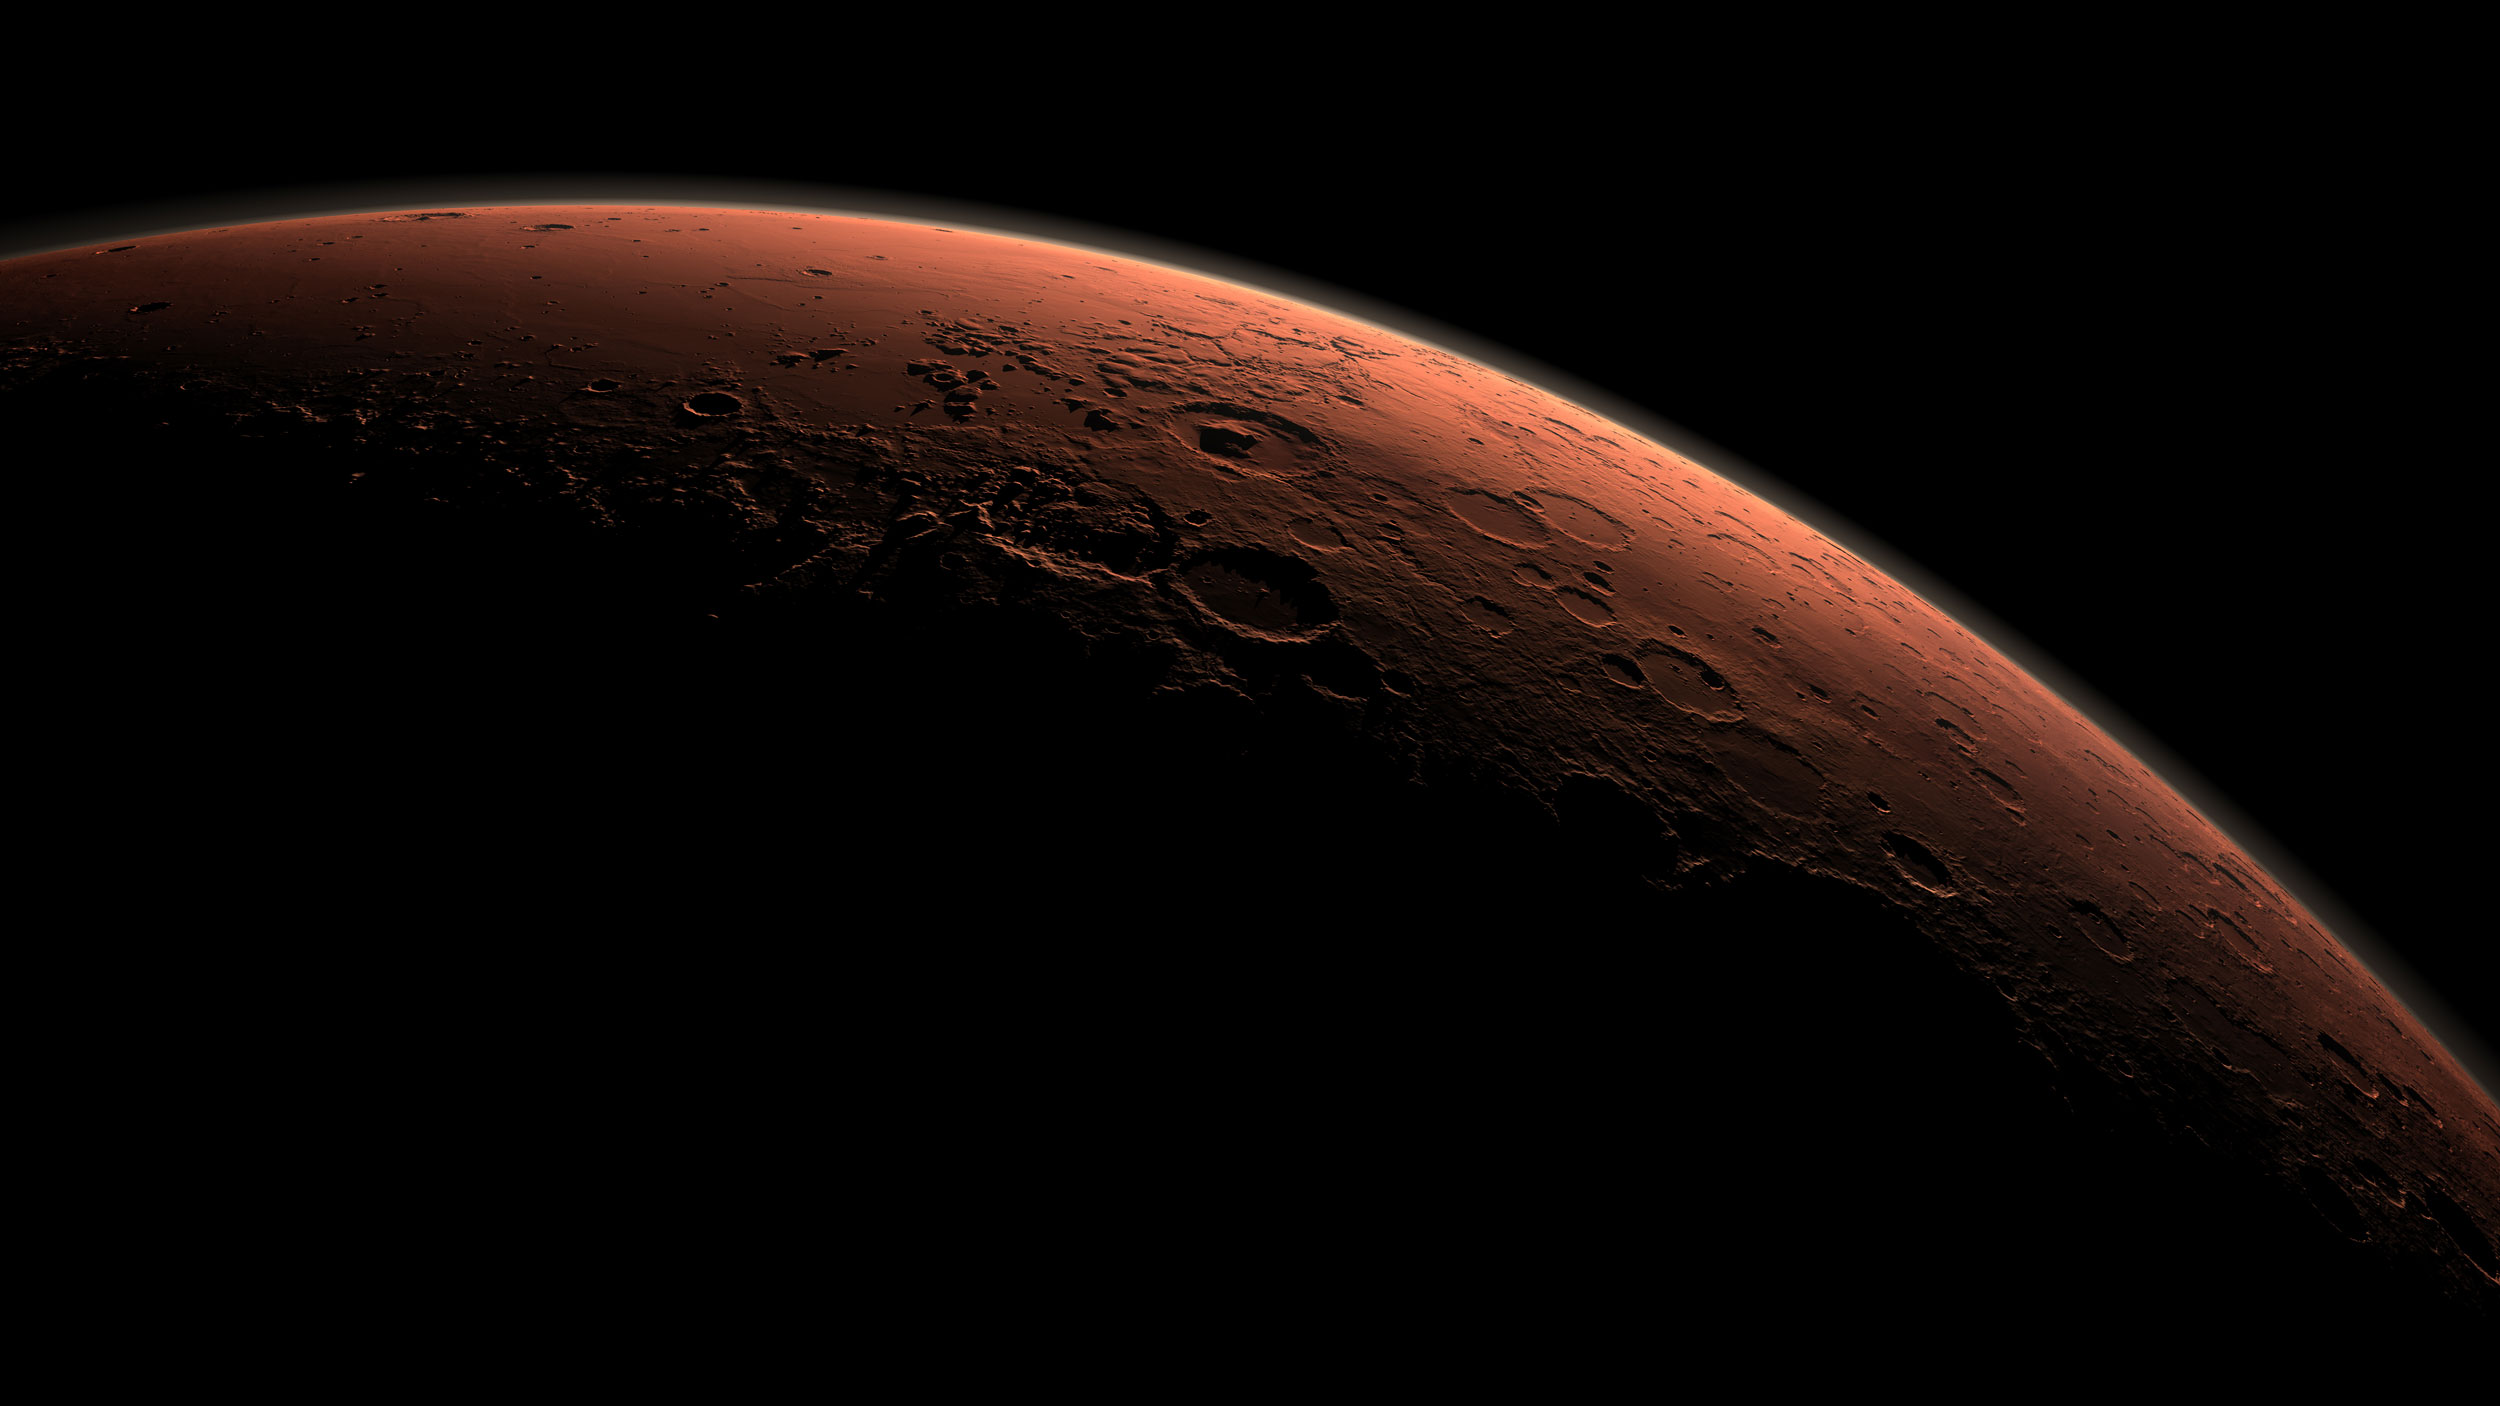 Mars had biological life before it originated on Earth 90